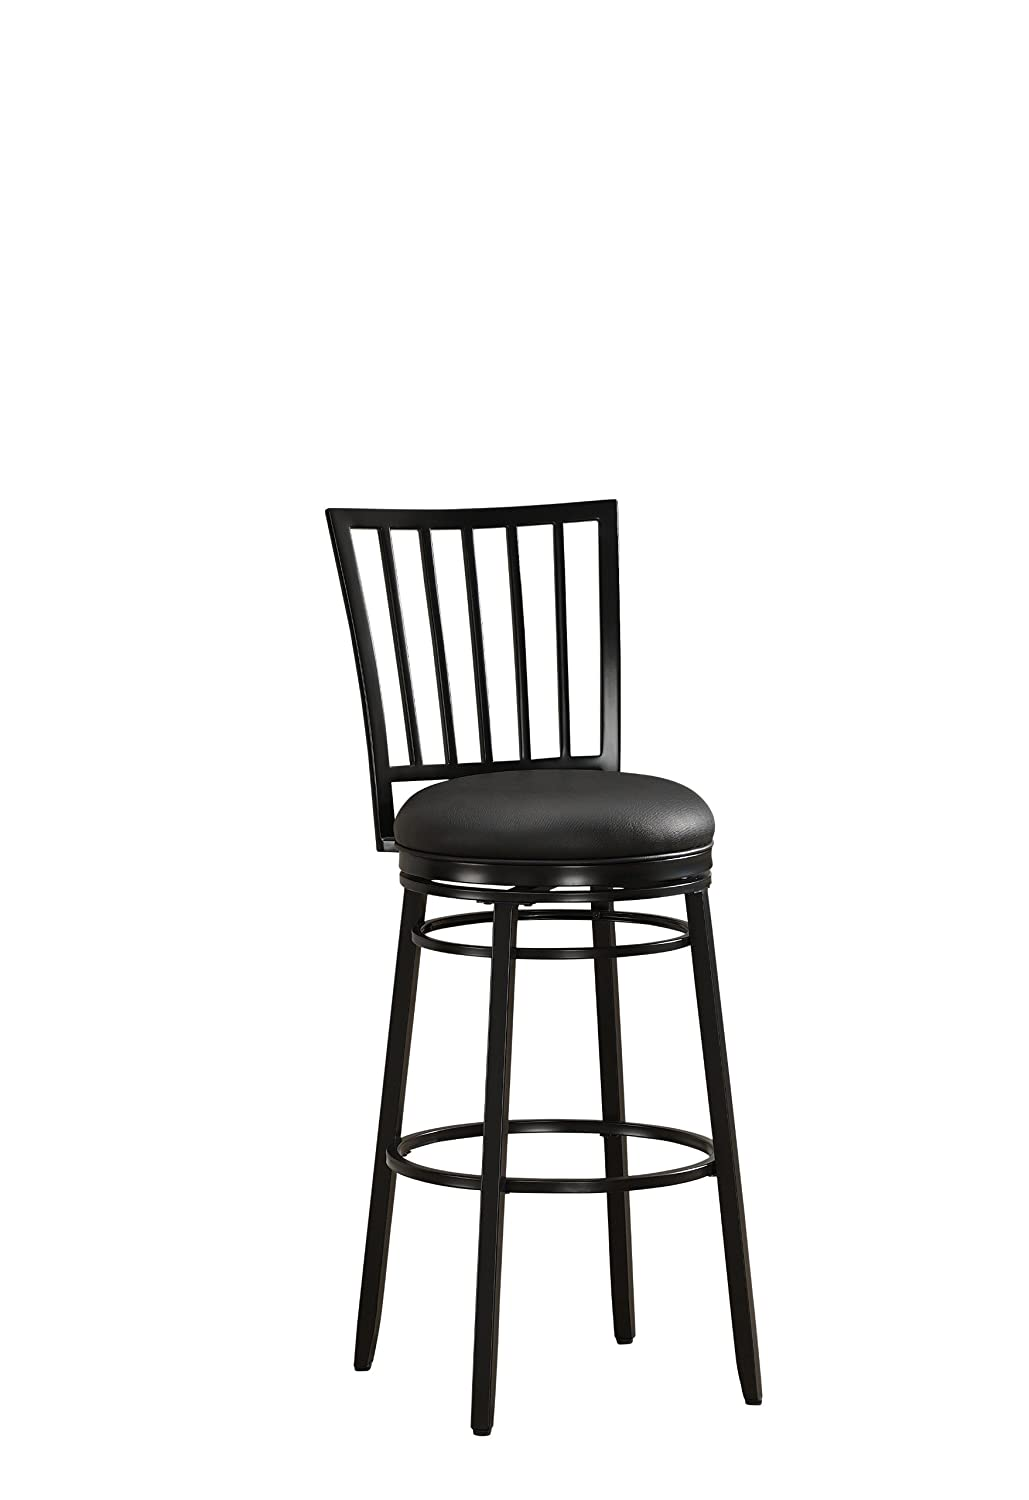 American Heritage Billiards Easton Bar Height Stool, Black